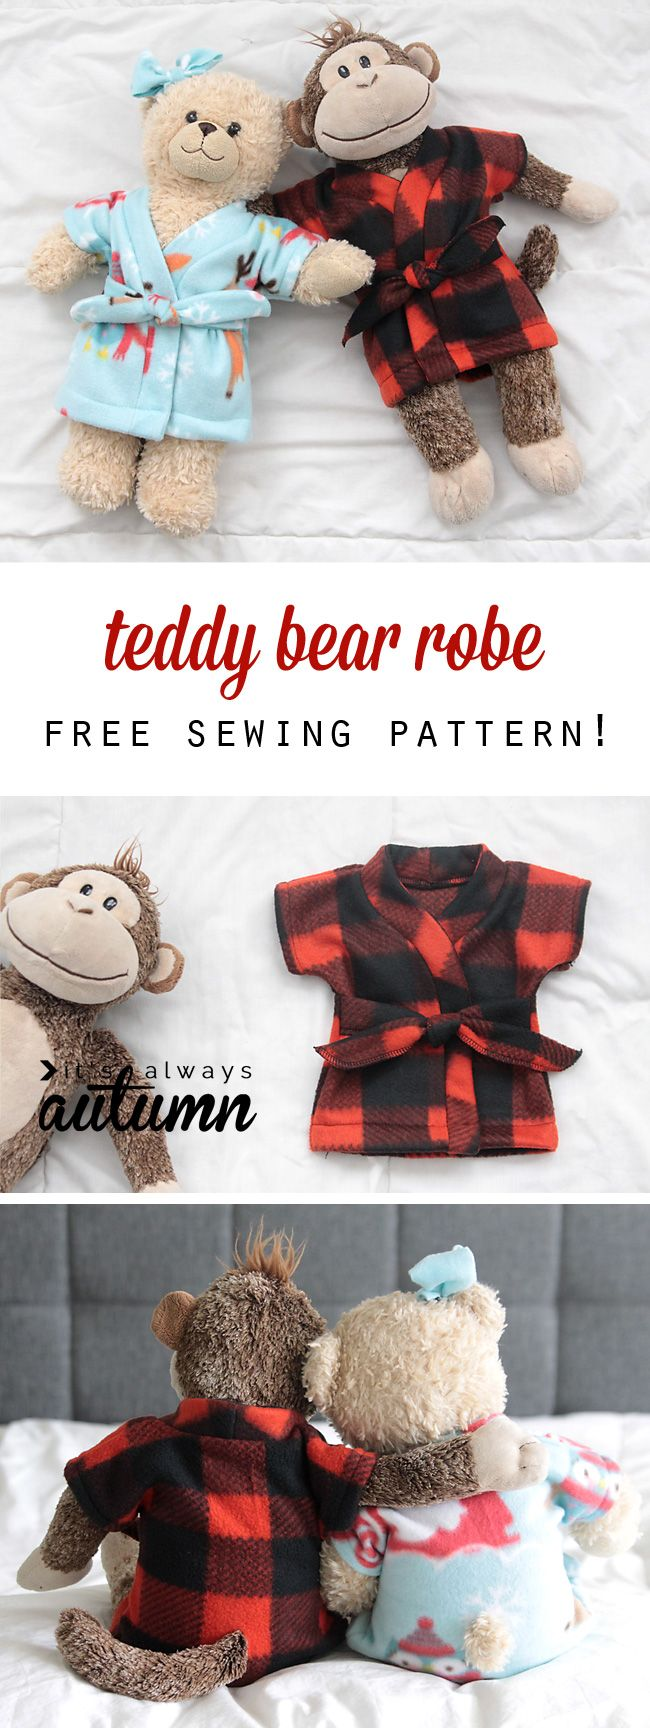 Stuffed animal teddy bear robe free sewing pattern free stuff free stuffed animal or teddy bear robe pattern and sewing tutorial jeuxipadfo Image collections